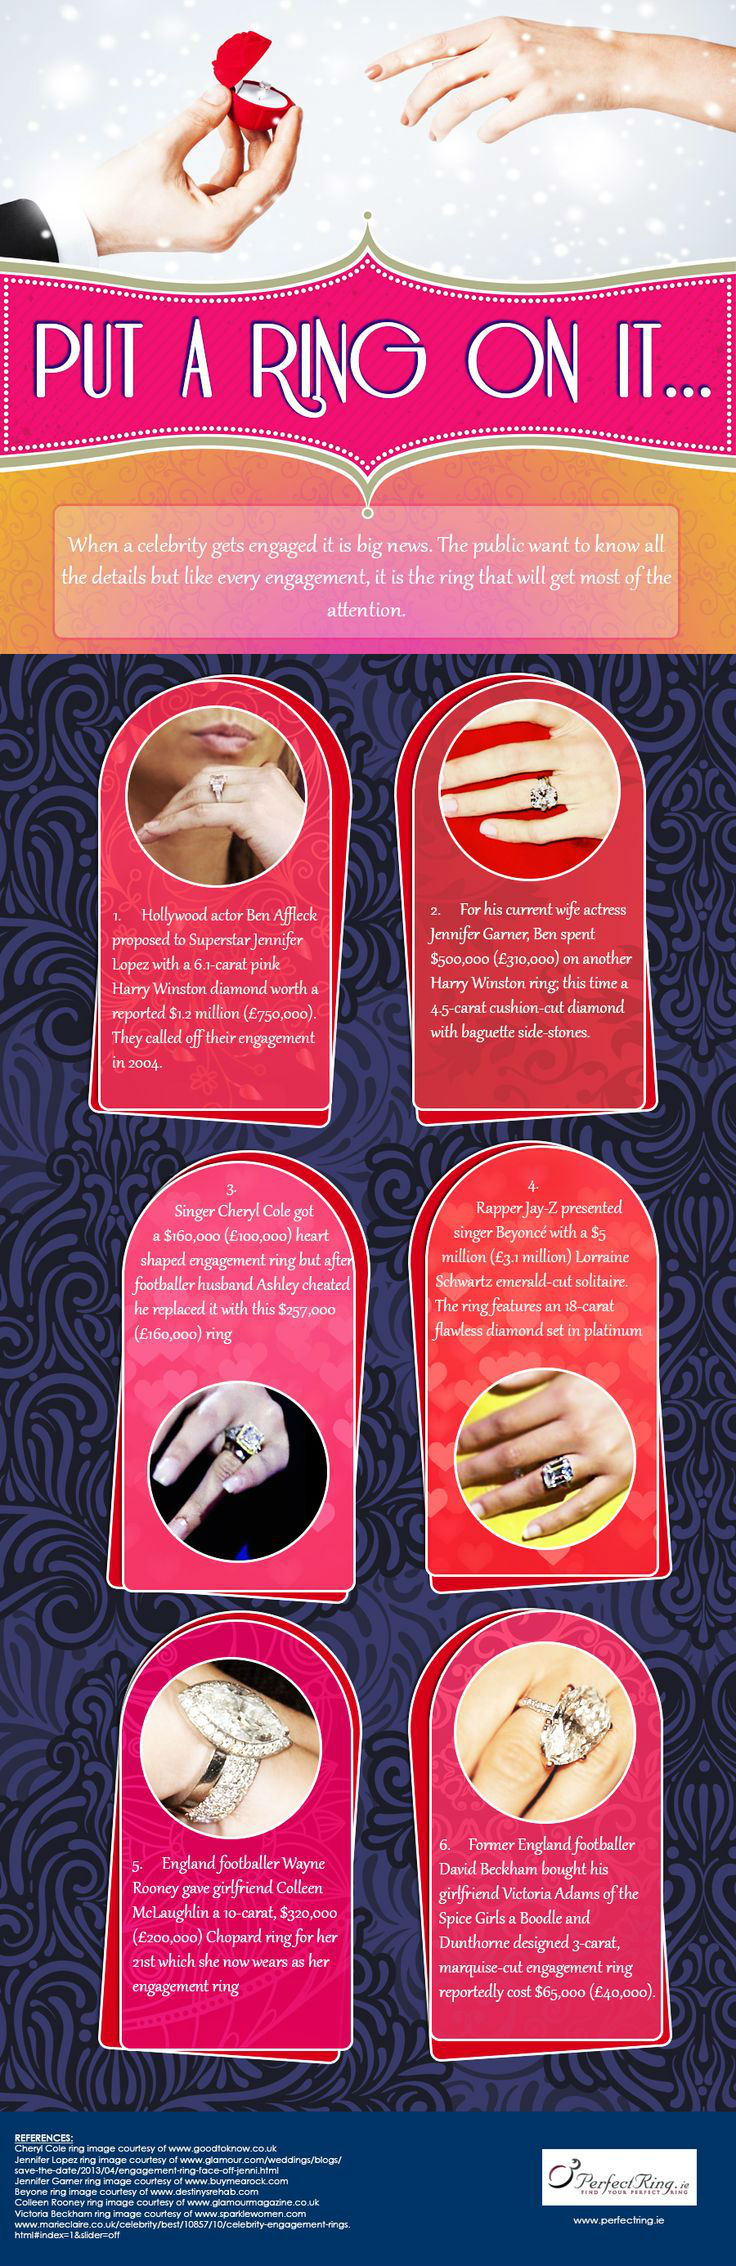 Put A Ring On It [Infographic]